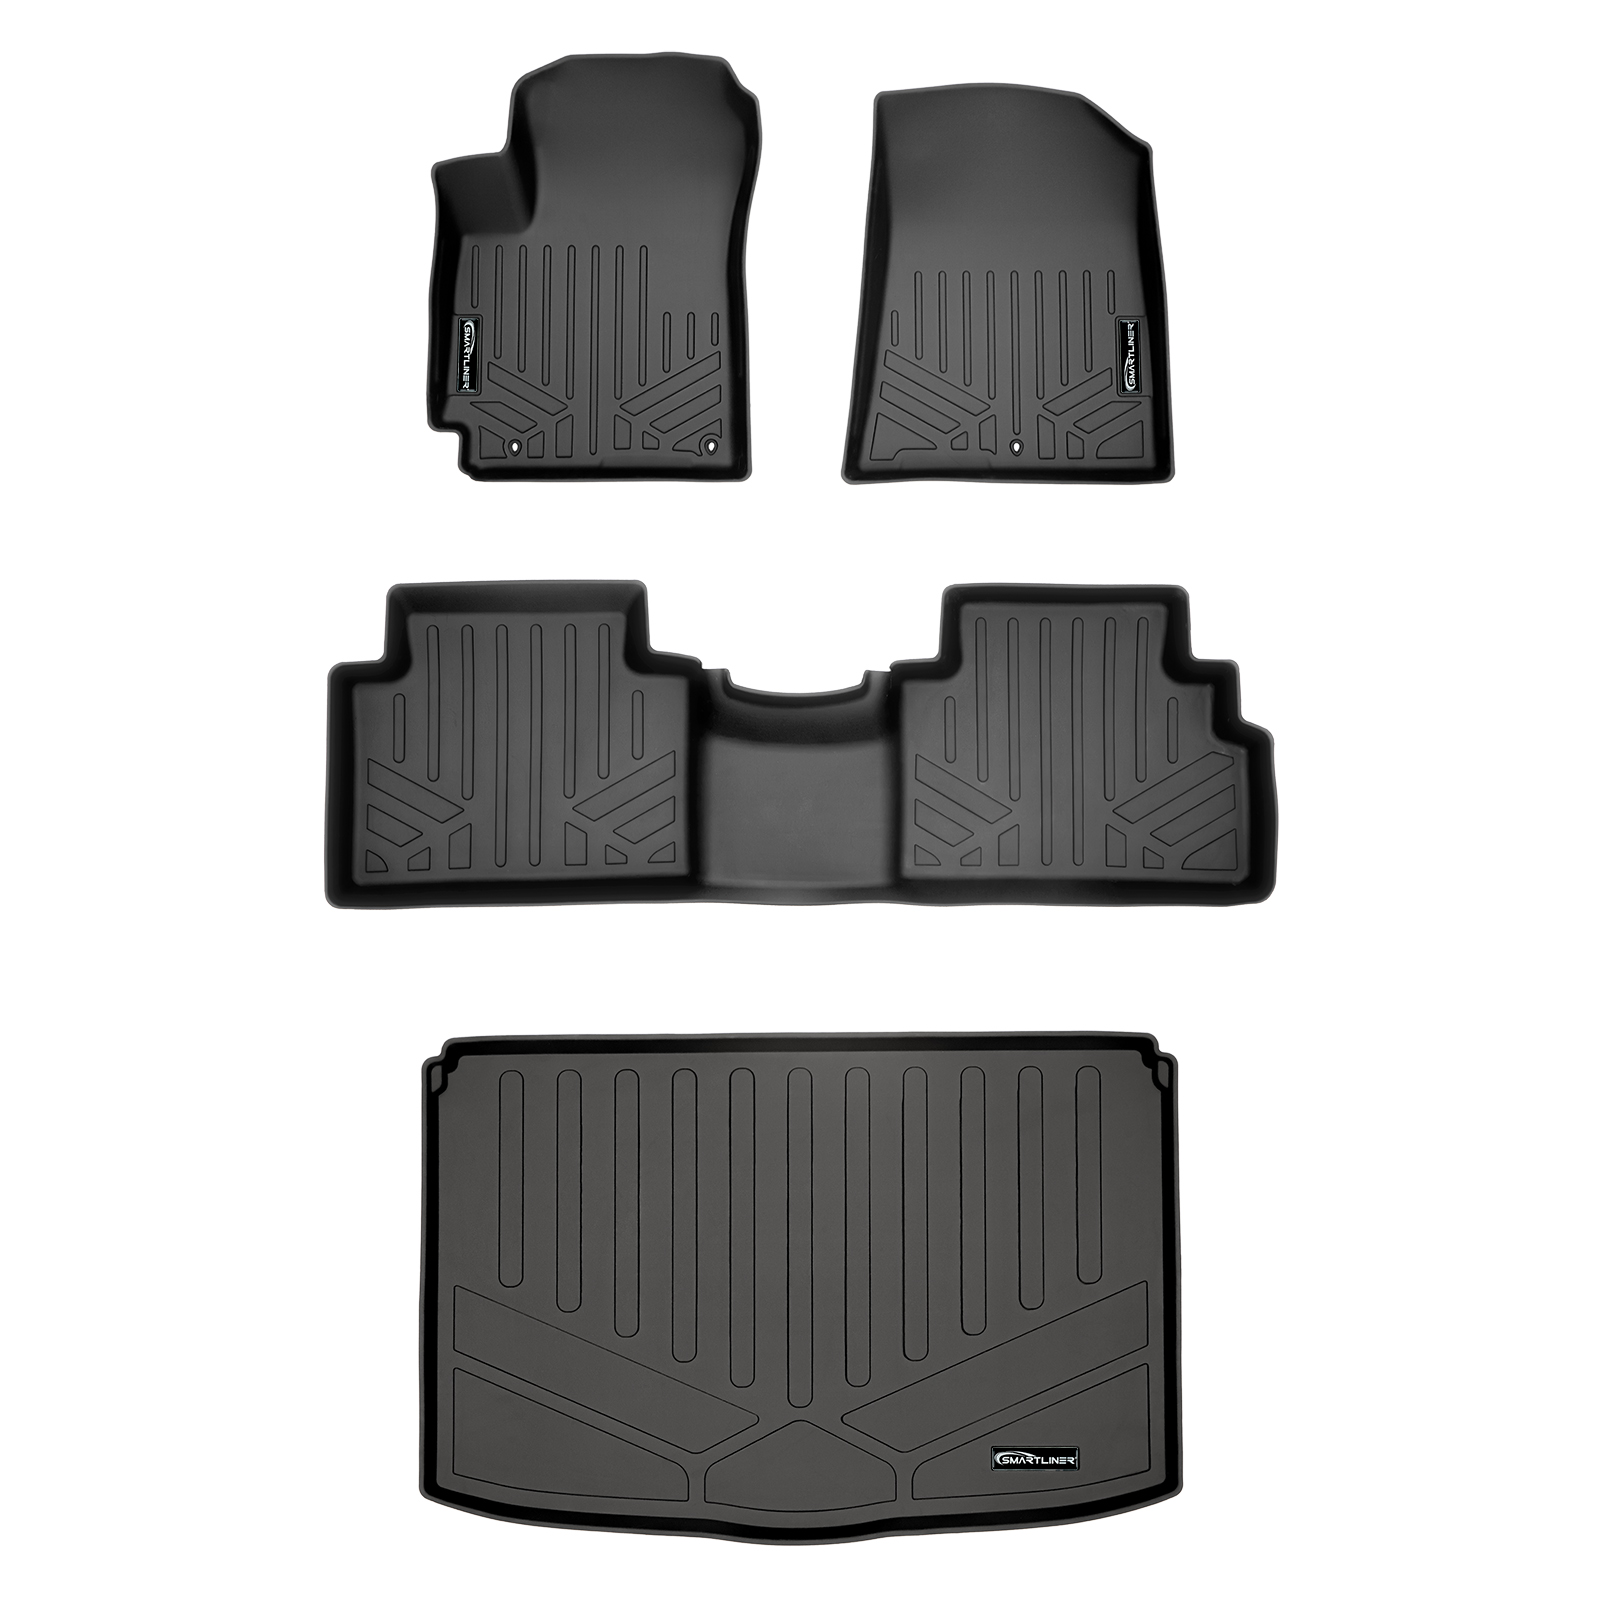 Black Single Layer for 2020 2020 Mercedes Benz GLB Class GLB 250 4 Matic 1st and 2nd Row Custom Fit All Weather Heavy Duty Full Coverage Floor Mat Floor Protection Made in USA